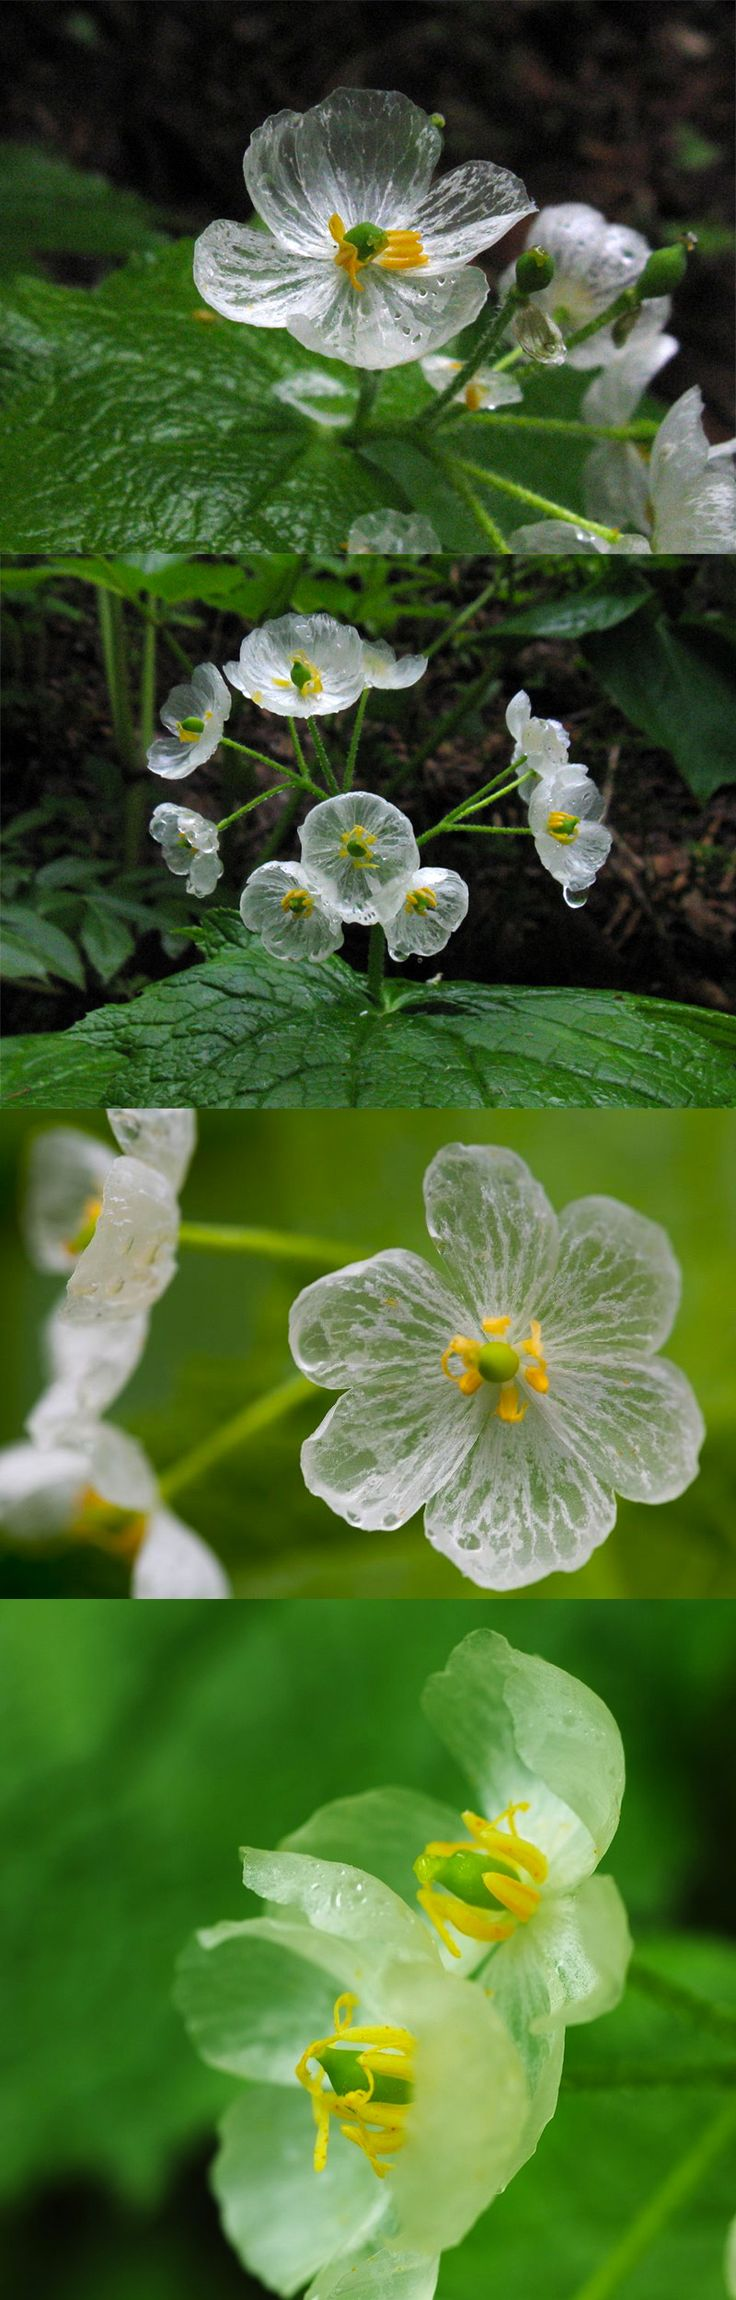 """The """"Skeleton Flower"""" Turns From White to Translucent When Exposed to Water"""